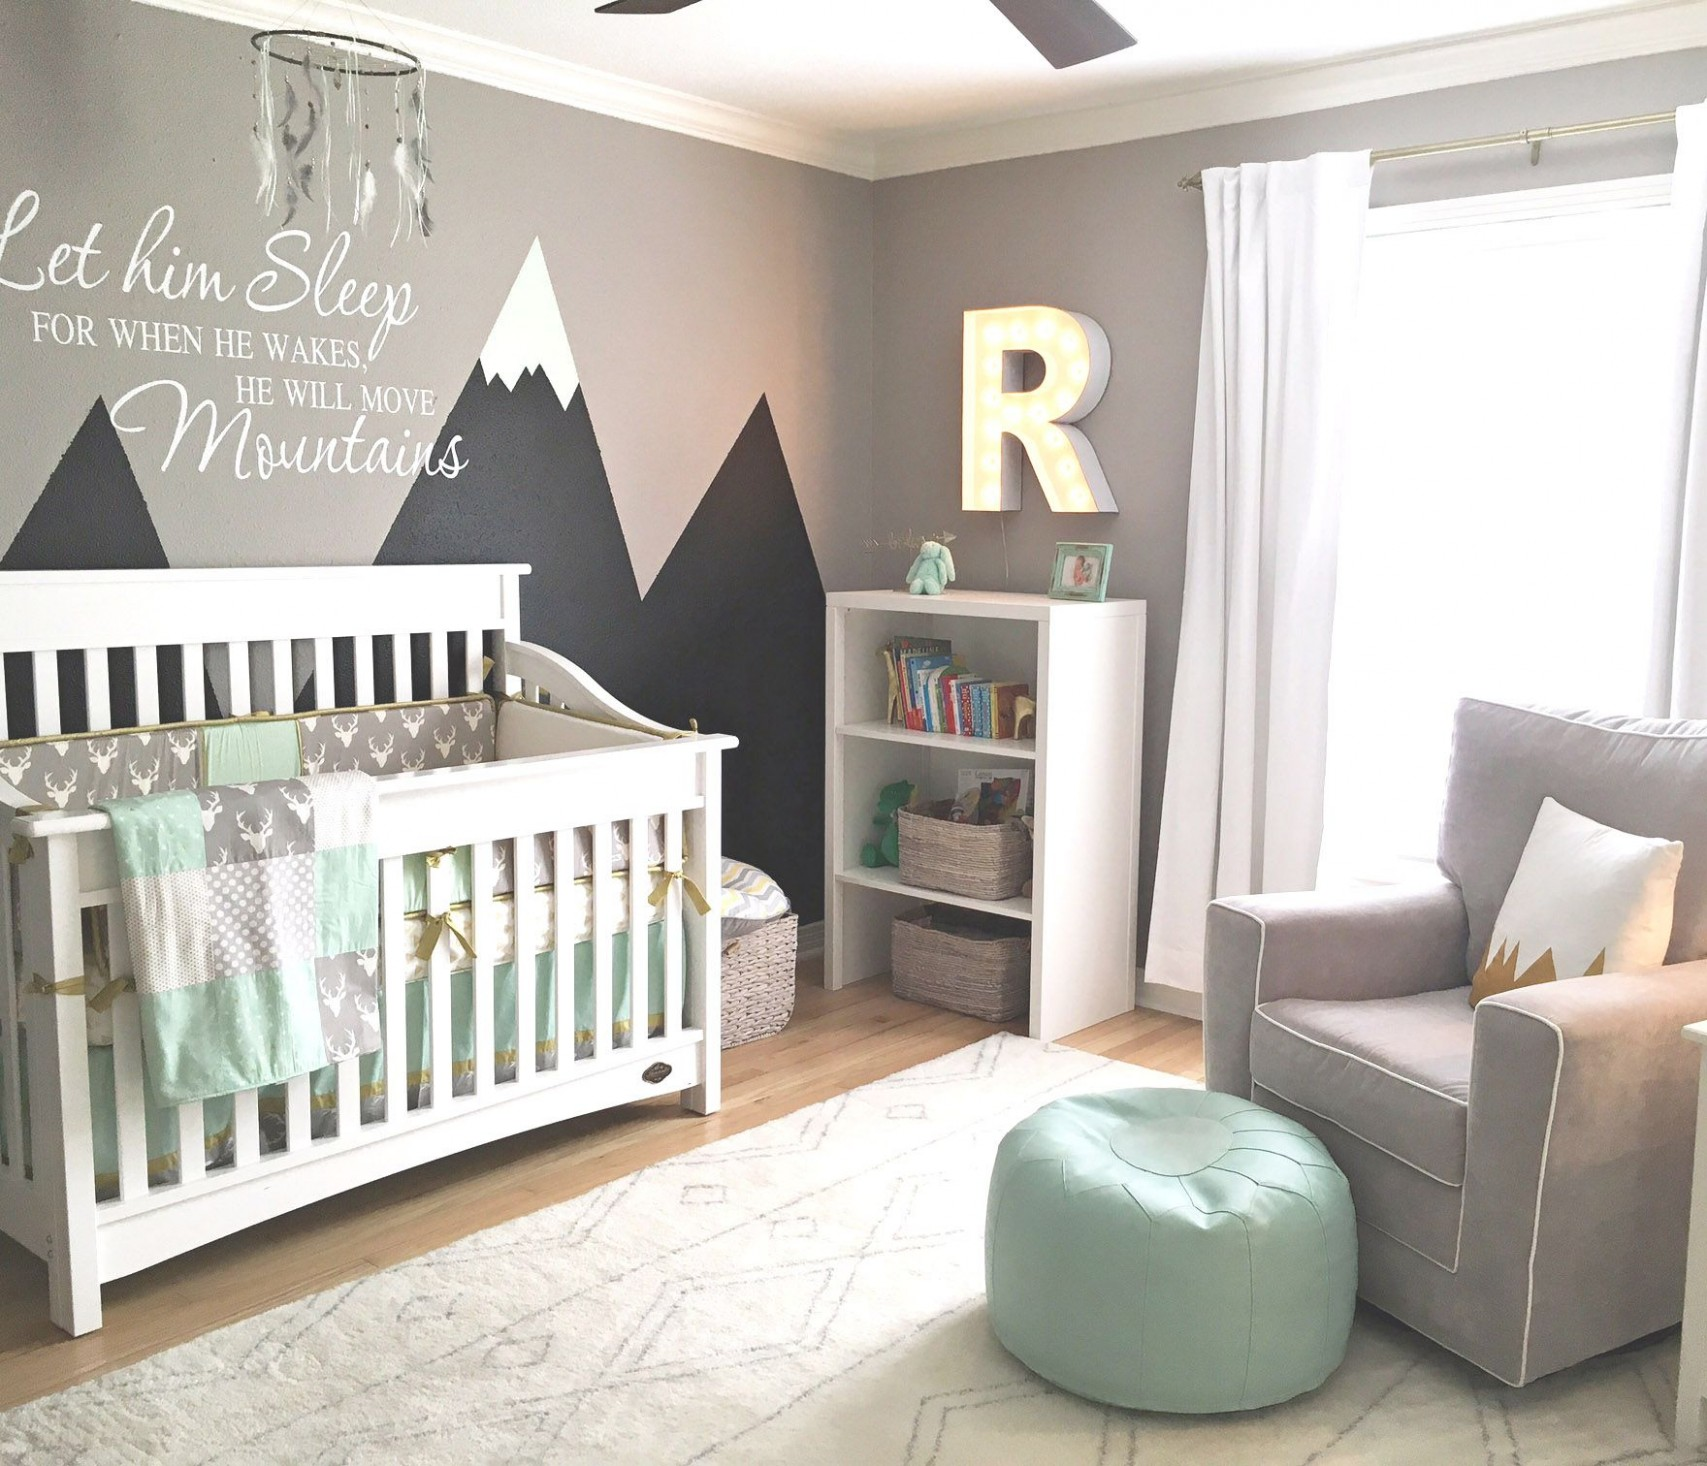 Design Reveal: Mountain-Inspired Nursery - Project Nursery  Baby  - Baby Room Mountain Theme